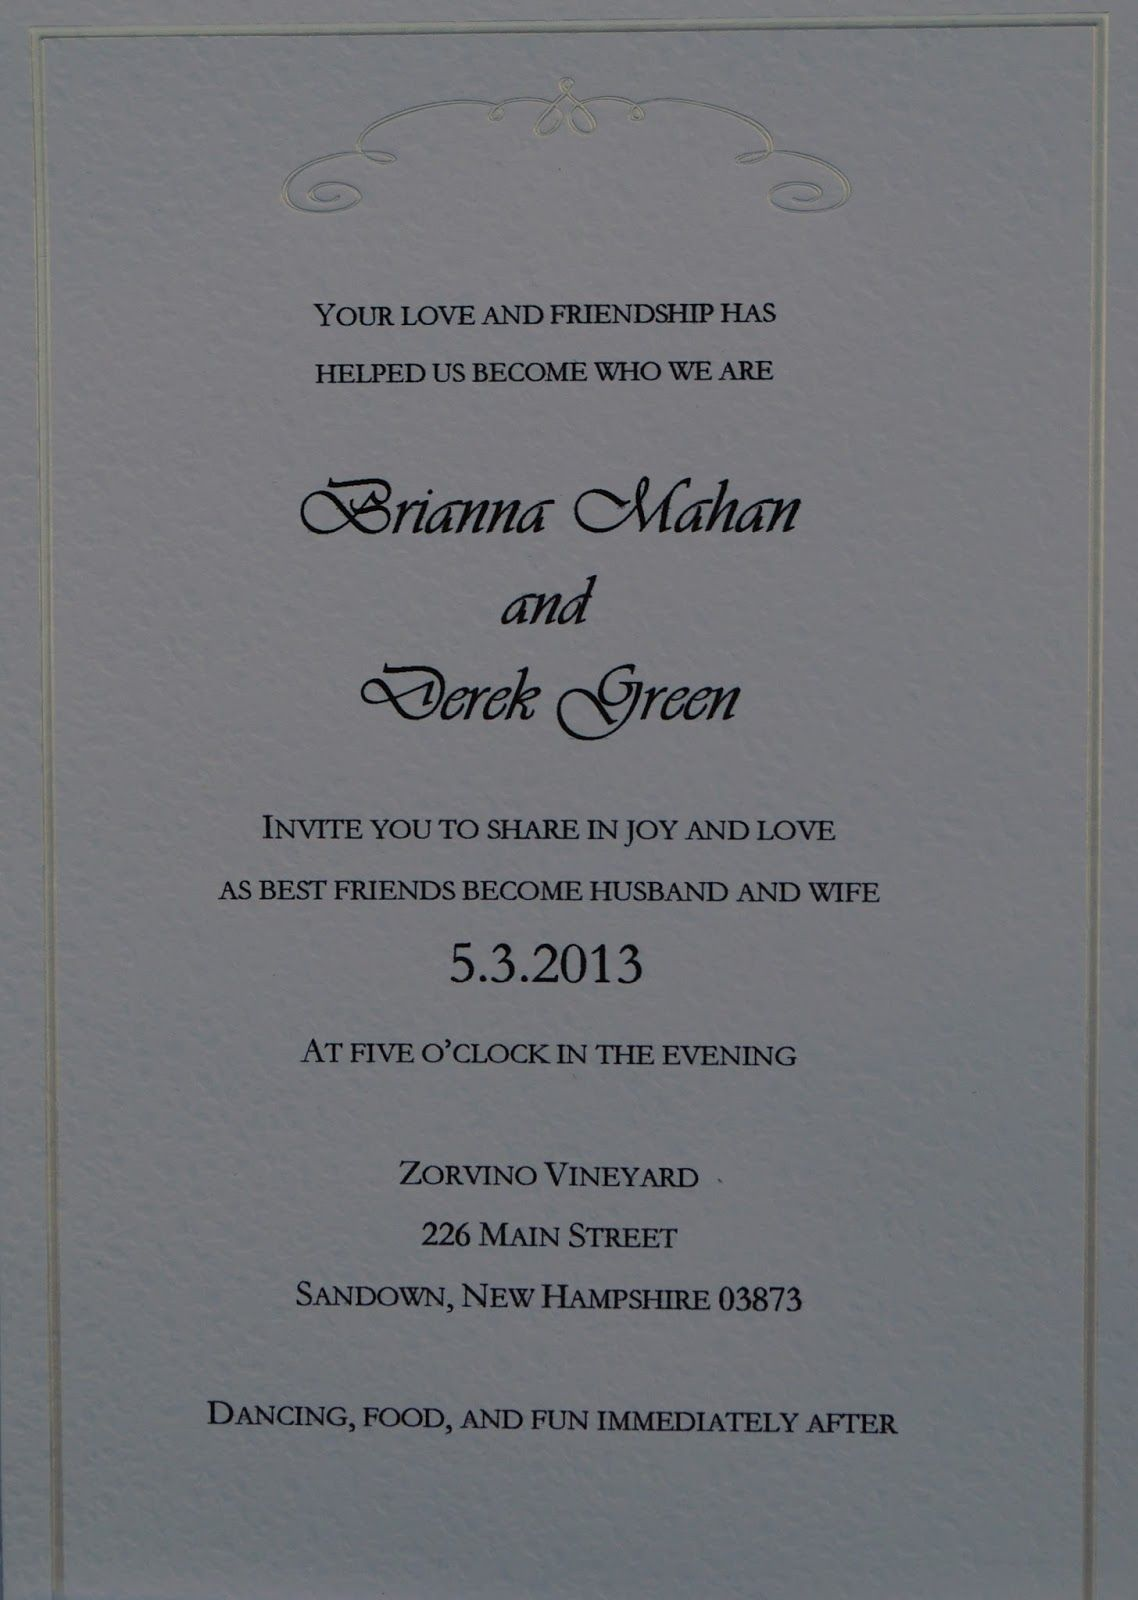 wedding invite wordings india%0A listing skills on a resume